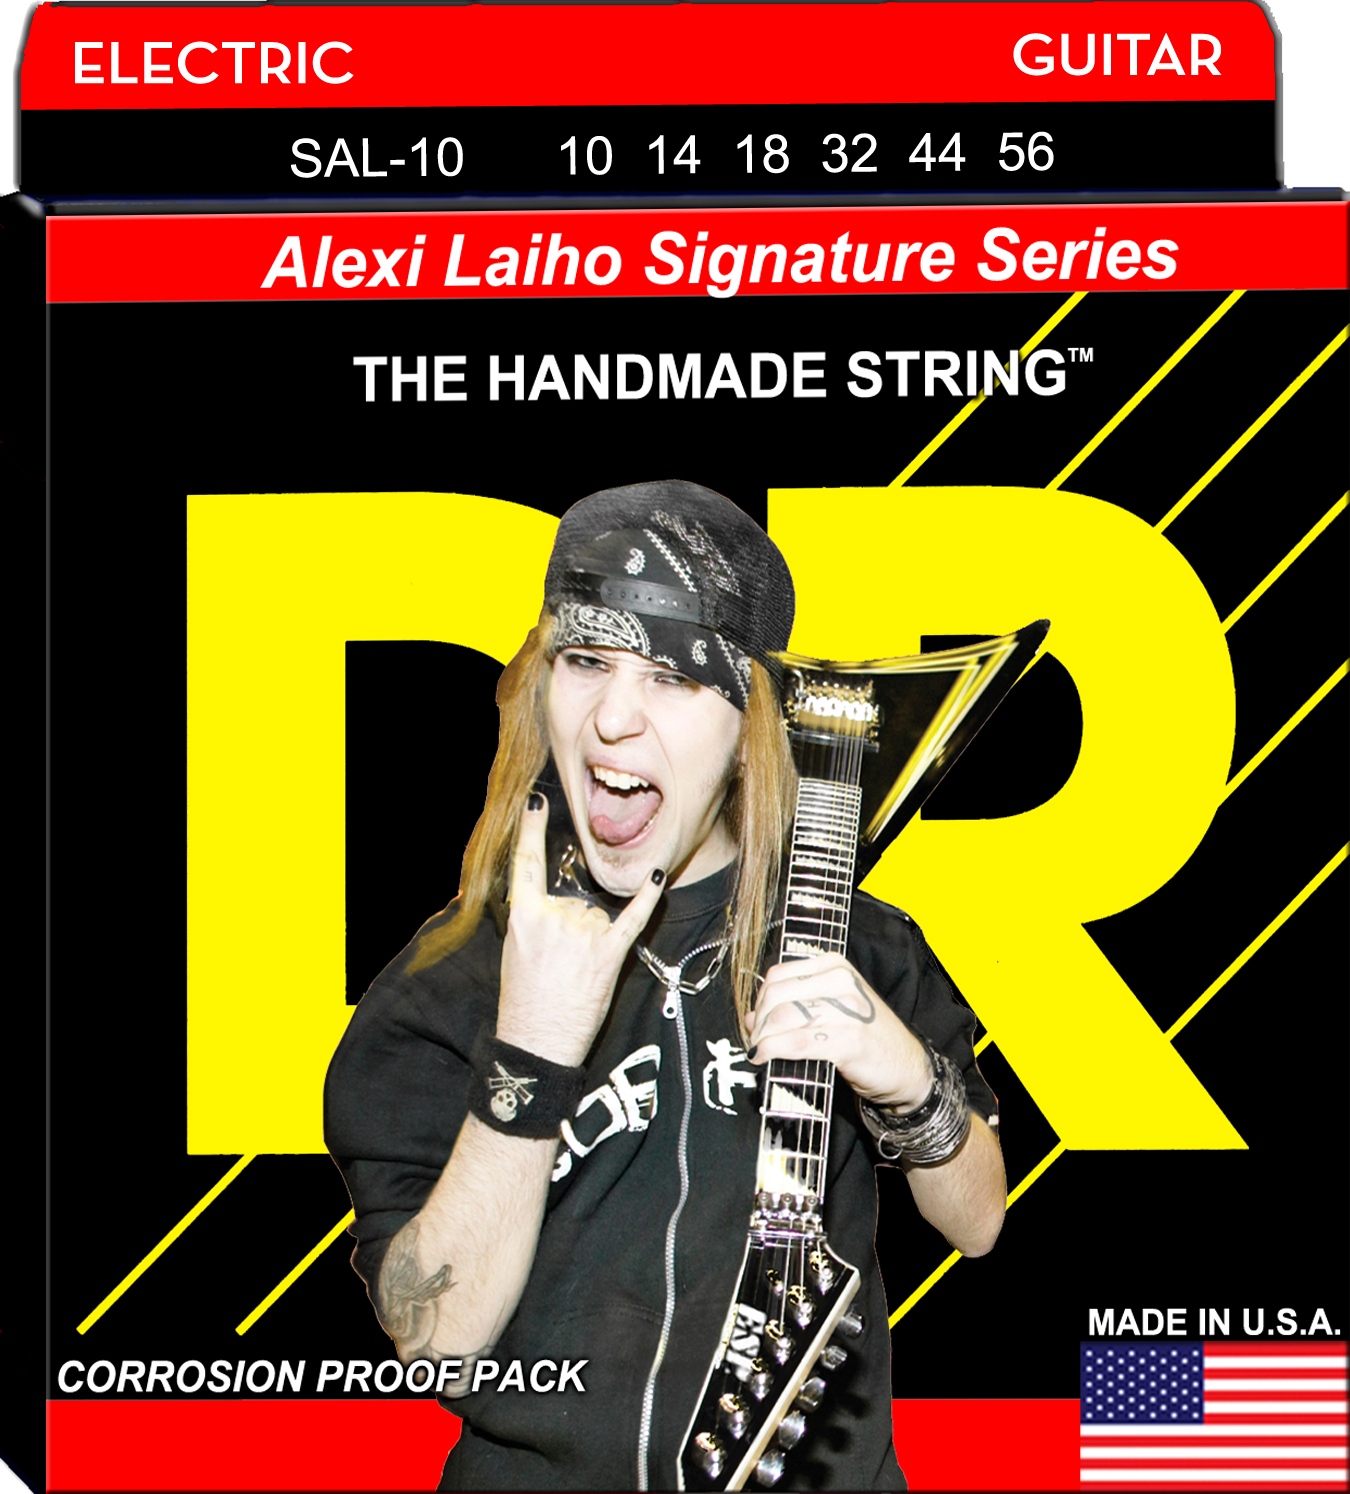 DR Alexi Laiho StringLife Treated Electric Guitar String Set - 10-52 Signature SAL-10